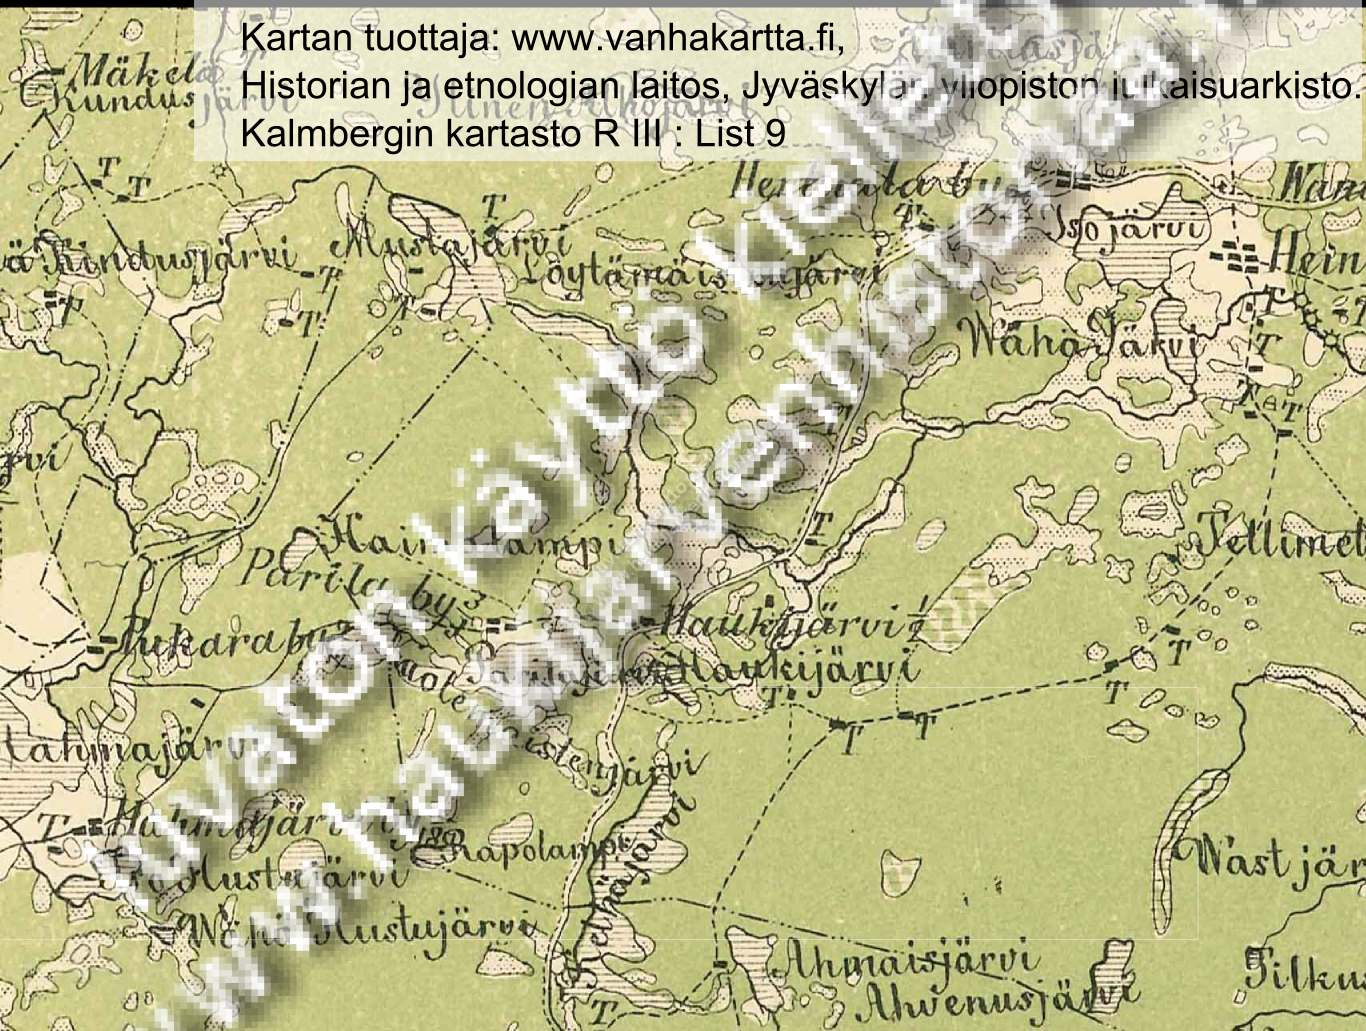 b_0_0_0_10_images_stories_muut_kalmberg1855.png